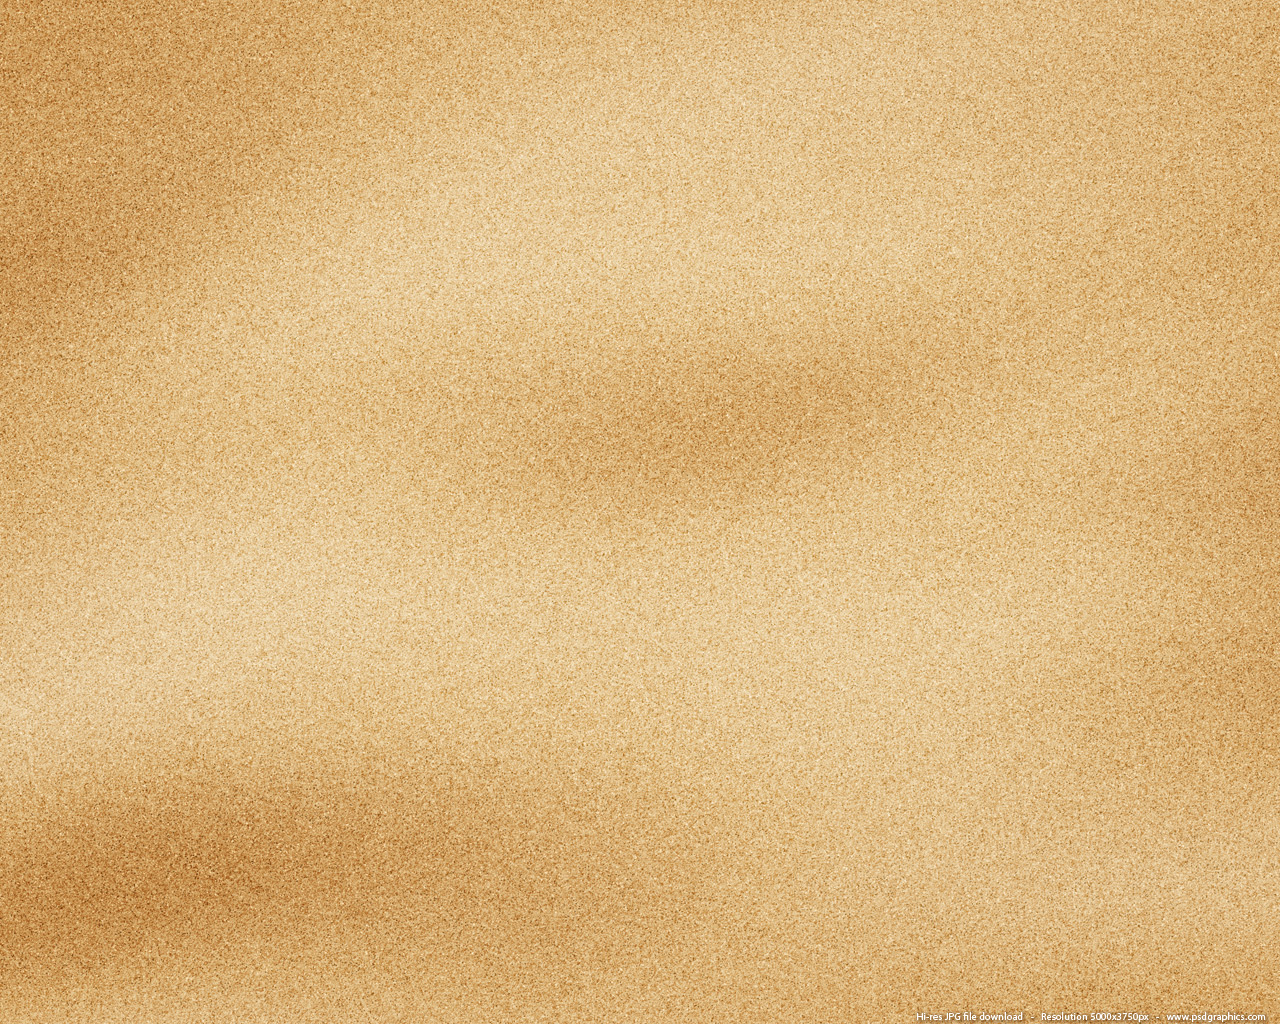 Medium size preview (1280x1024px): Beach sand background